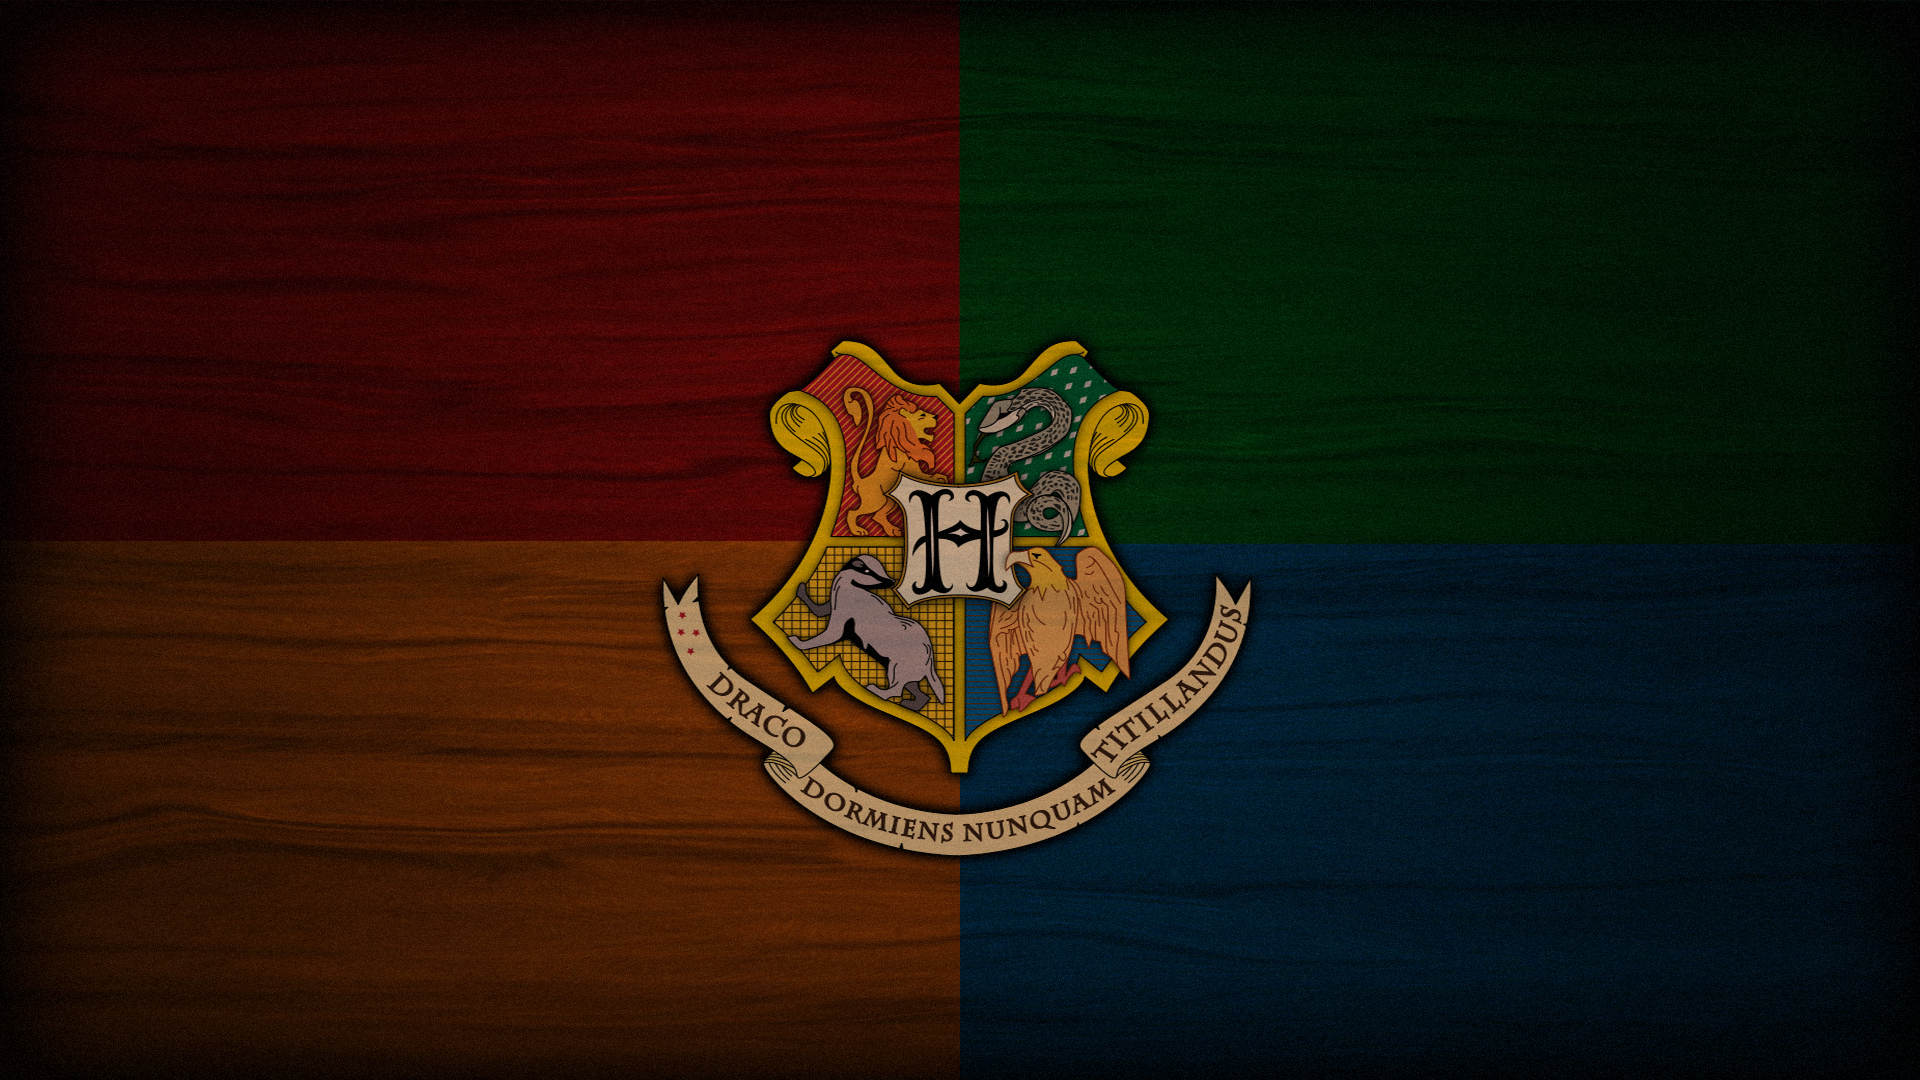 harry potter wallpaper hd Buscar con Google Geek and